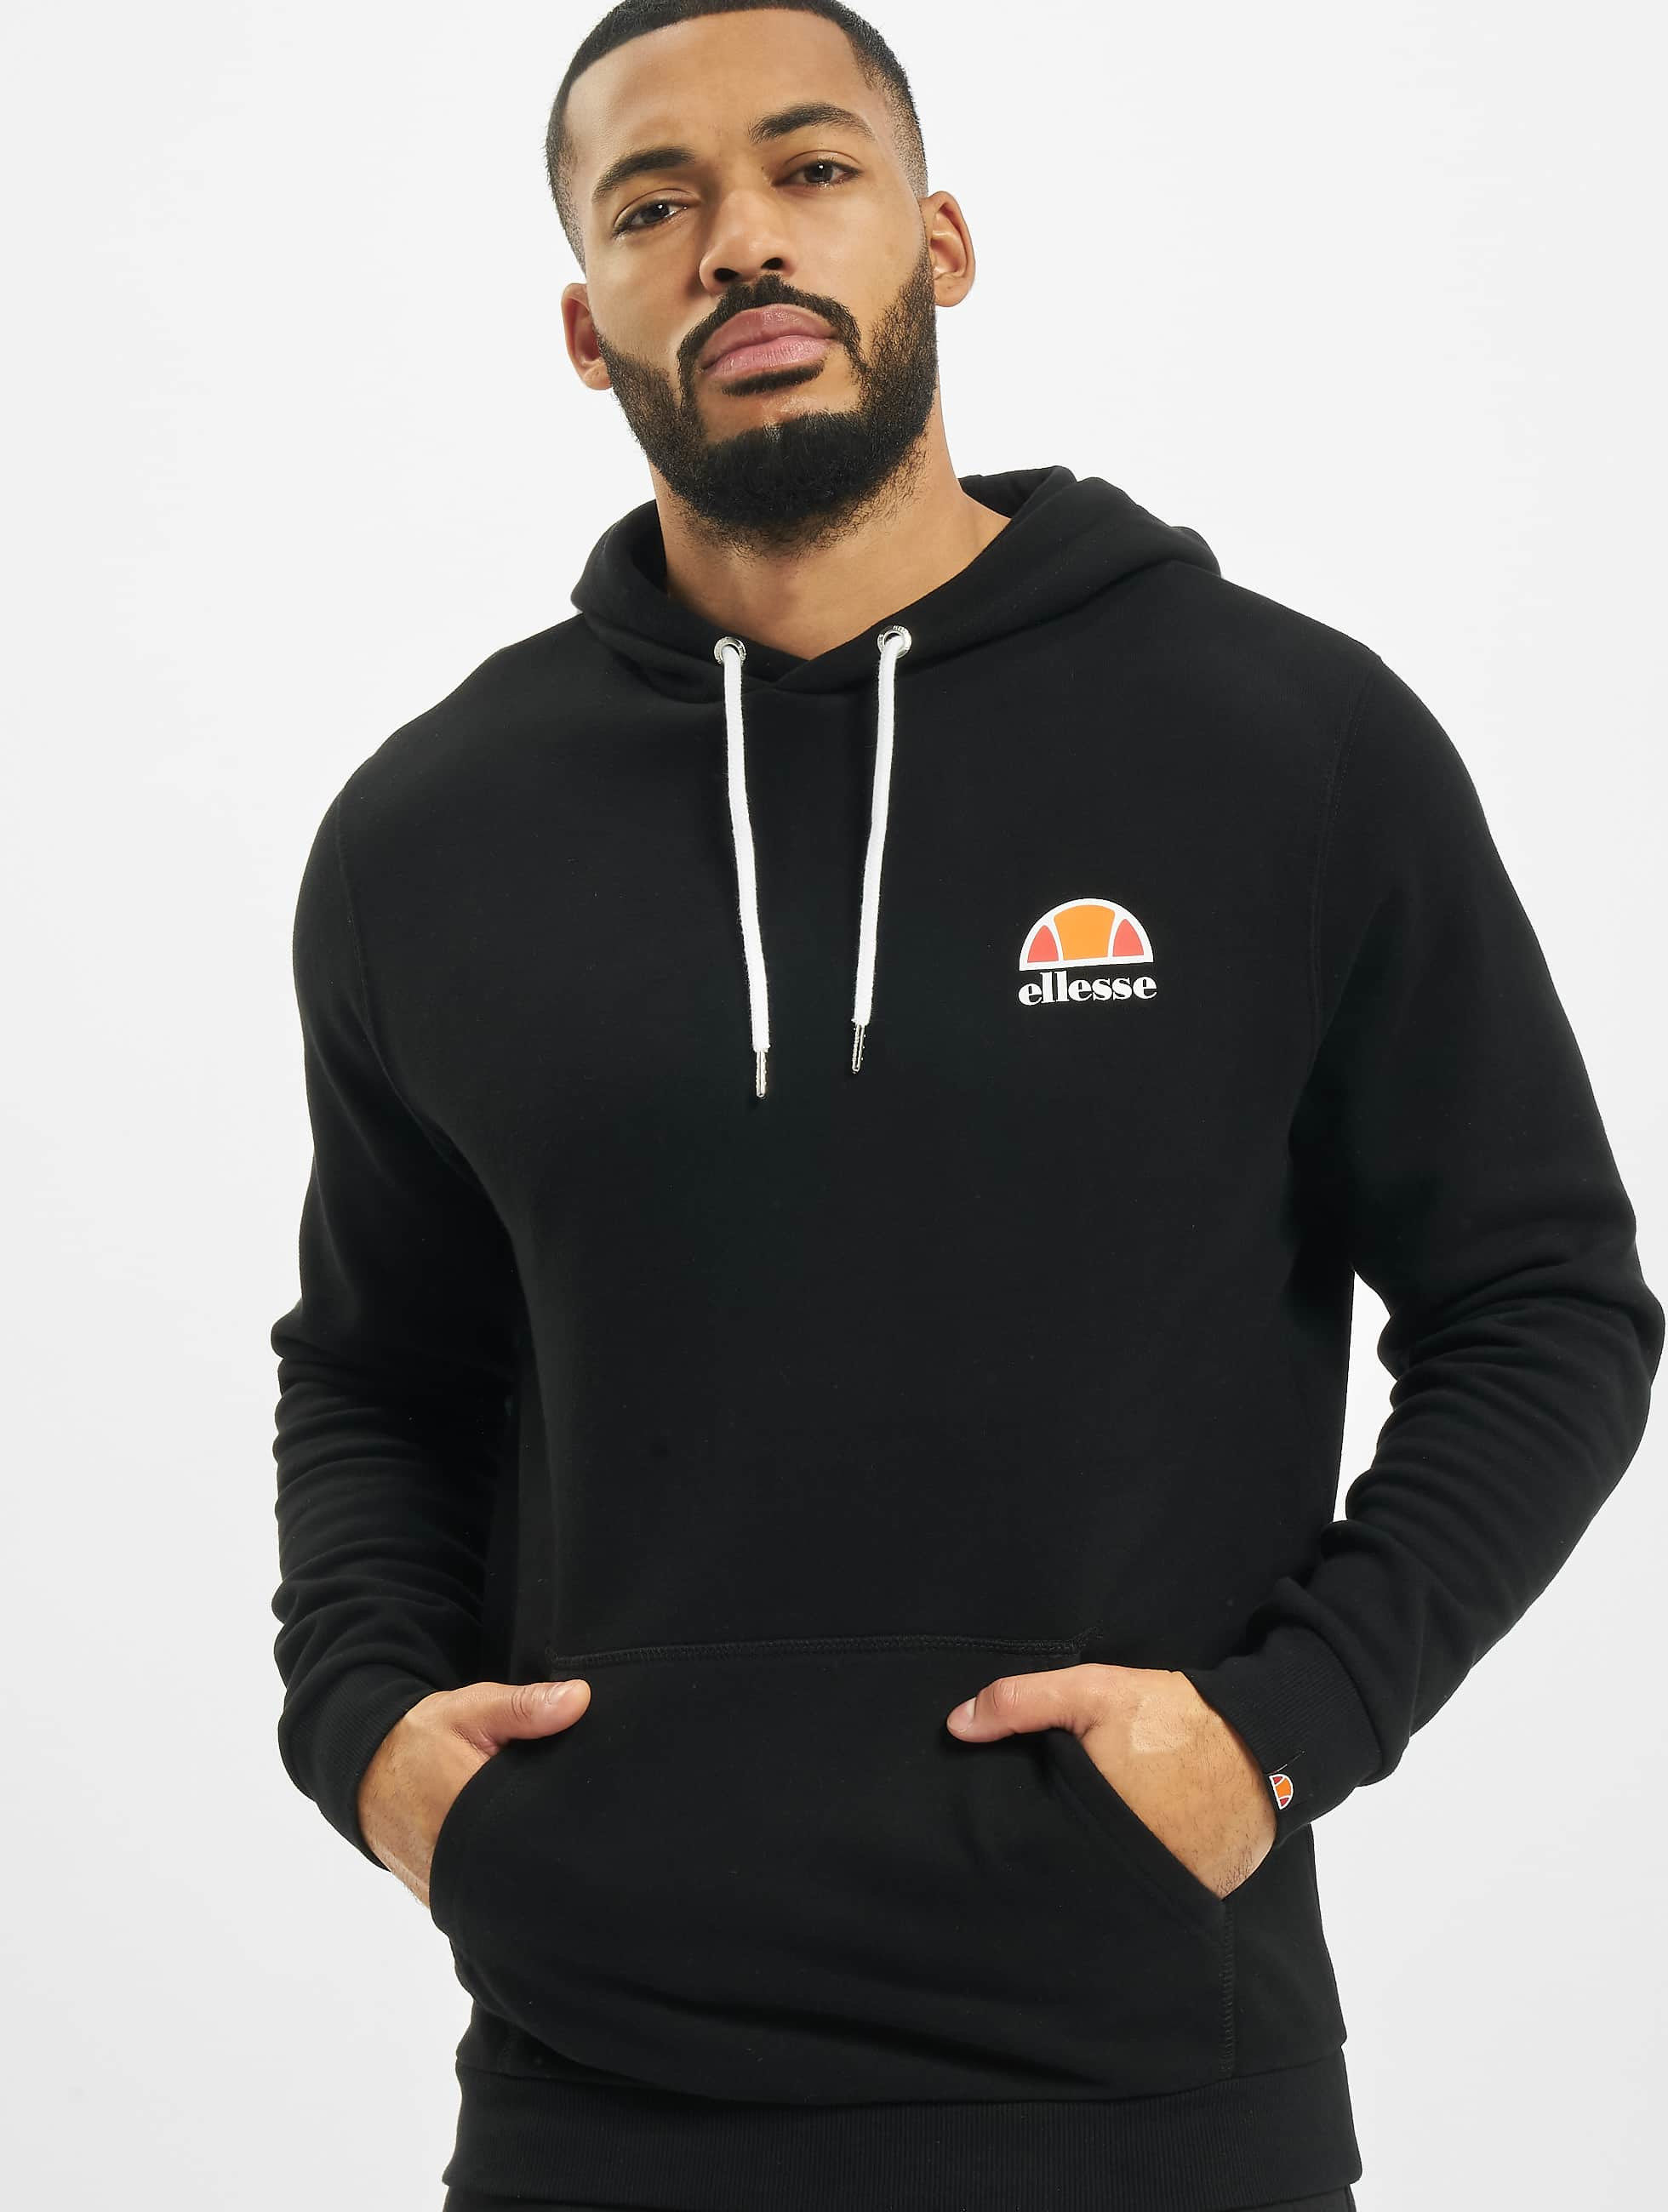 ellesse toce noir homme sweat capuche 333254. Black Bedroom Furniture Sets. Home Design Ideas